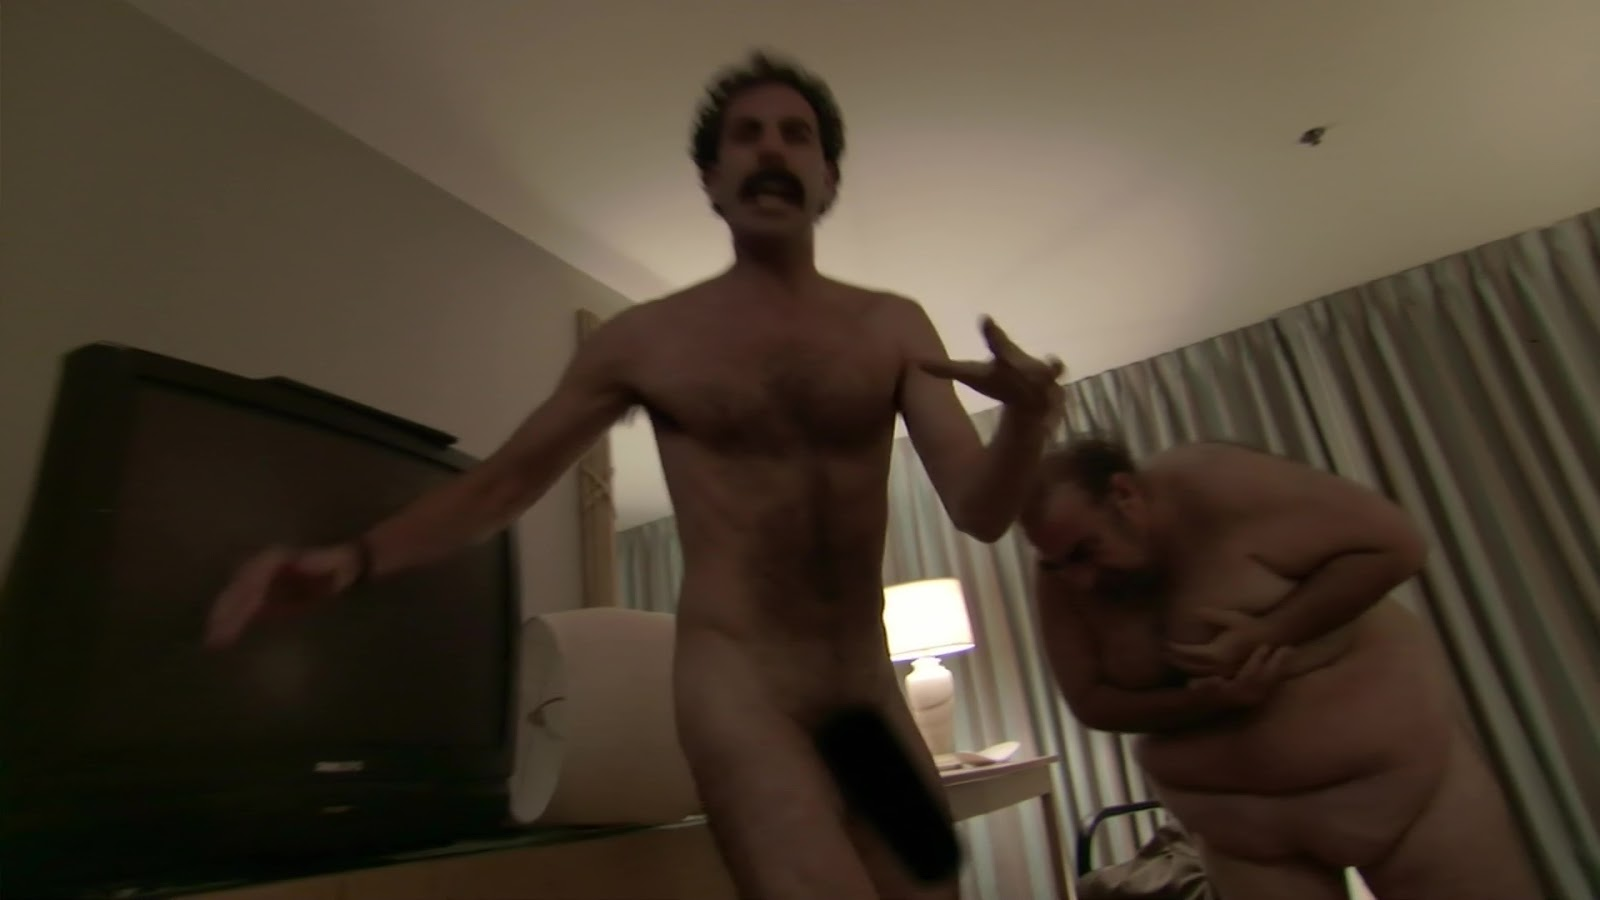 Borat and azamat fight because they are idiots